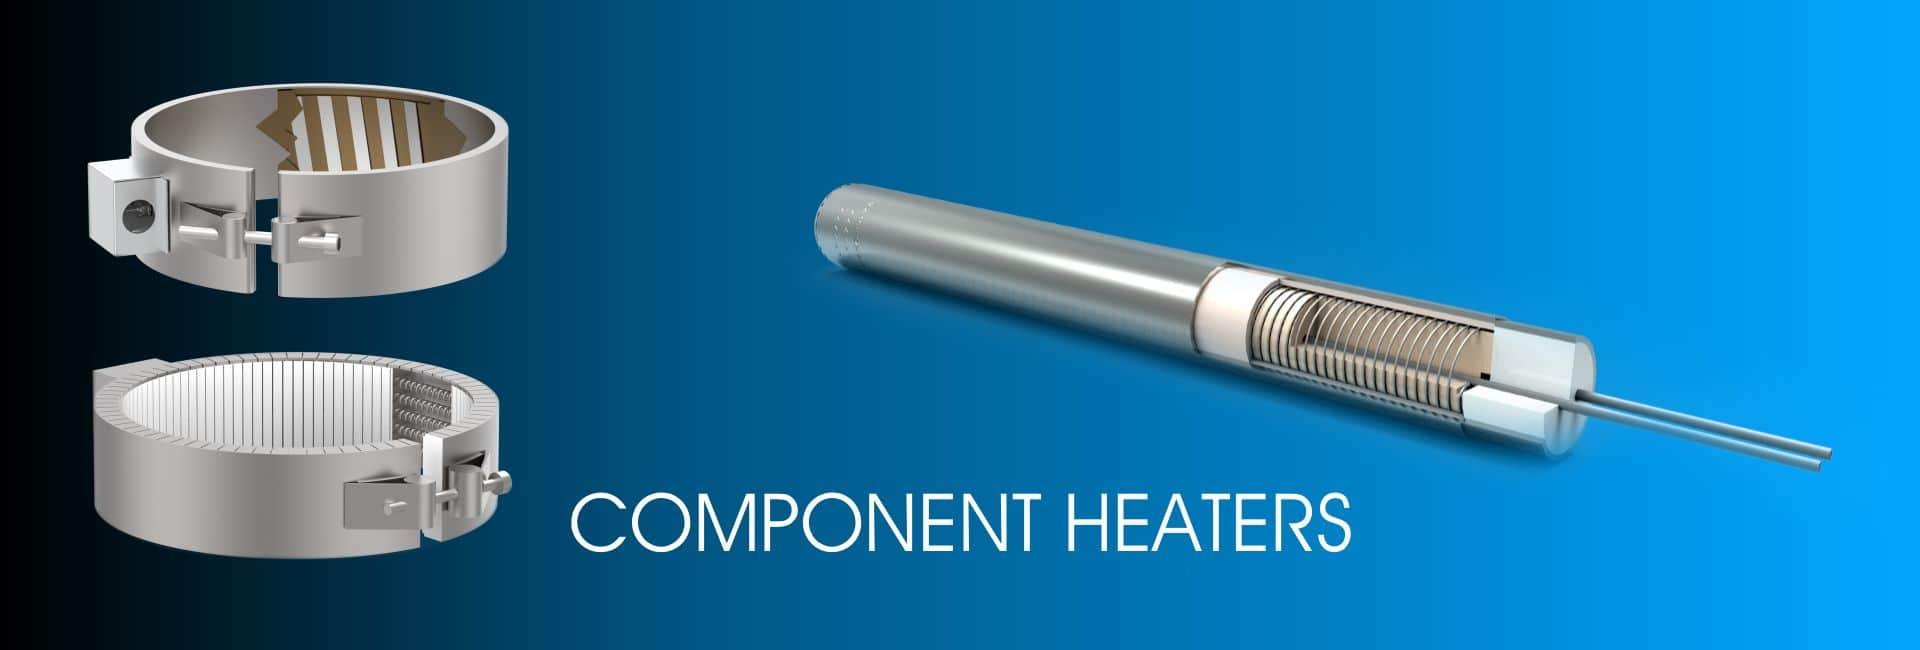 Component Heaters